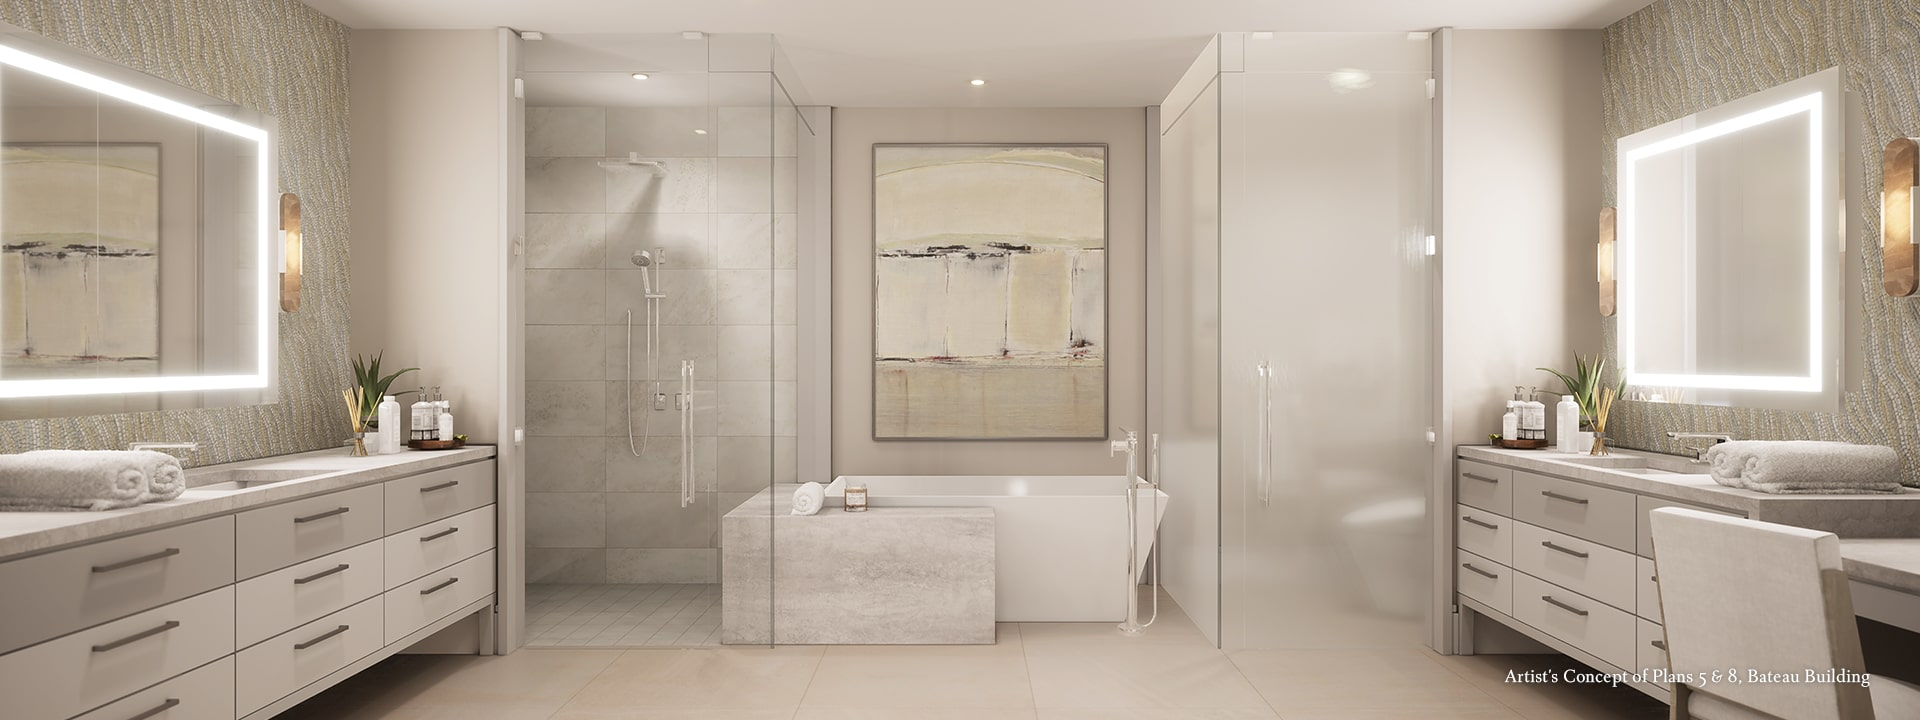 Bateau Plan 5 & 8 Bath Rendering at The St Regis Longboat Key Resort